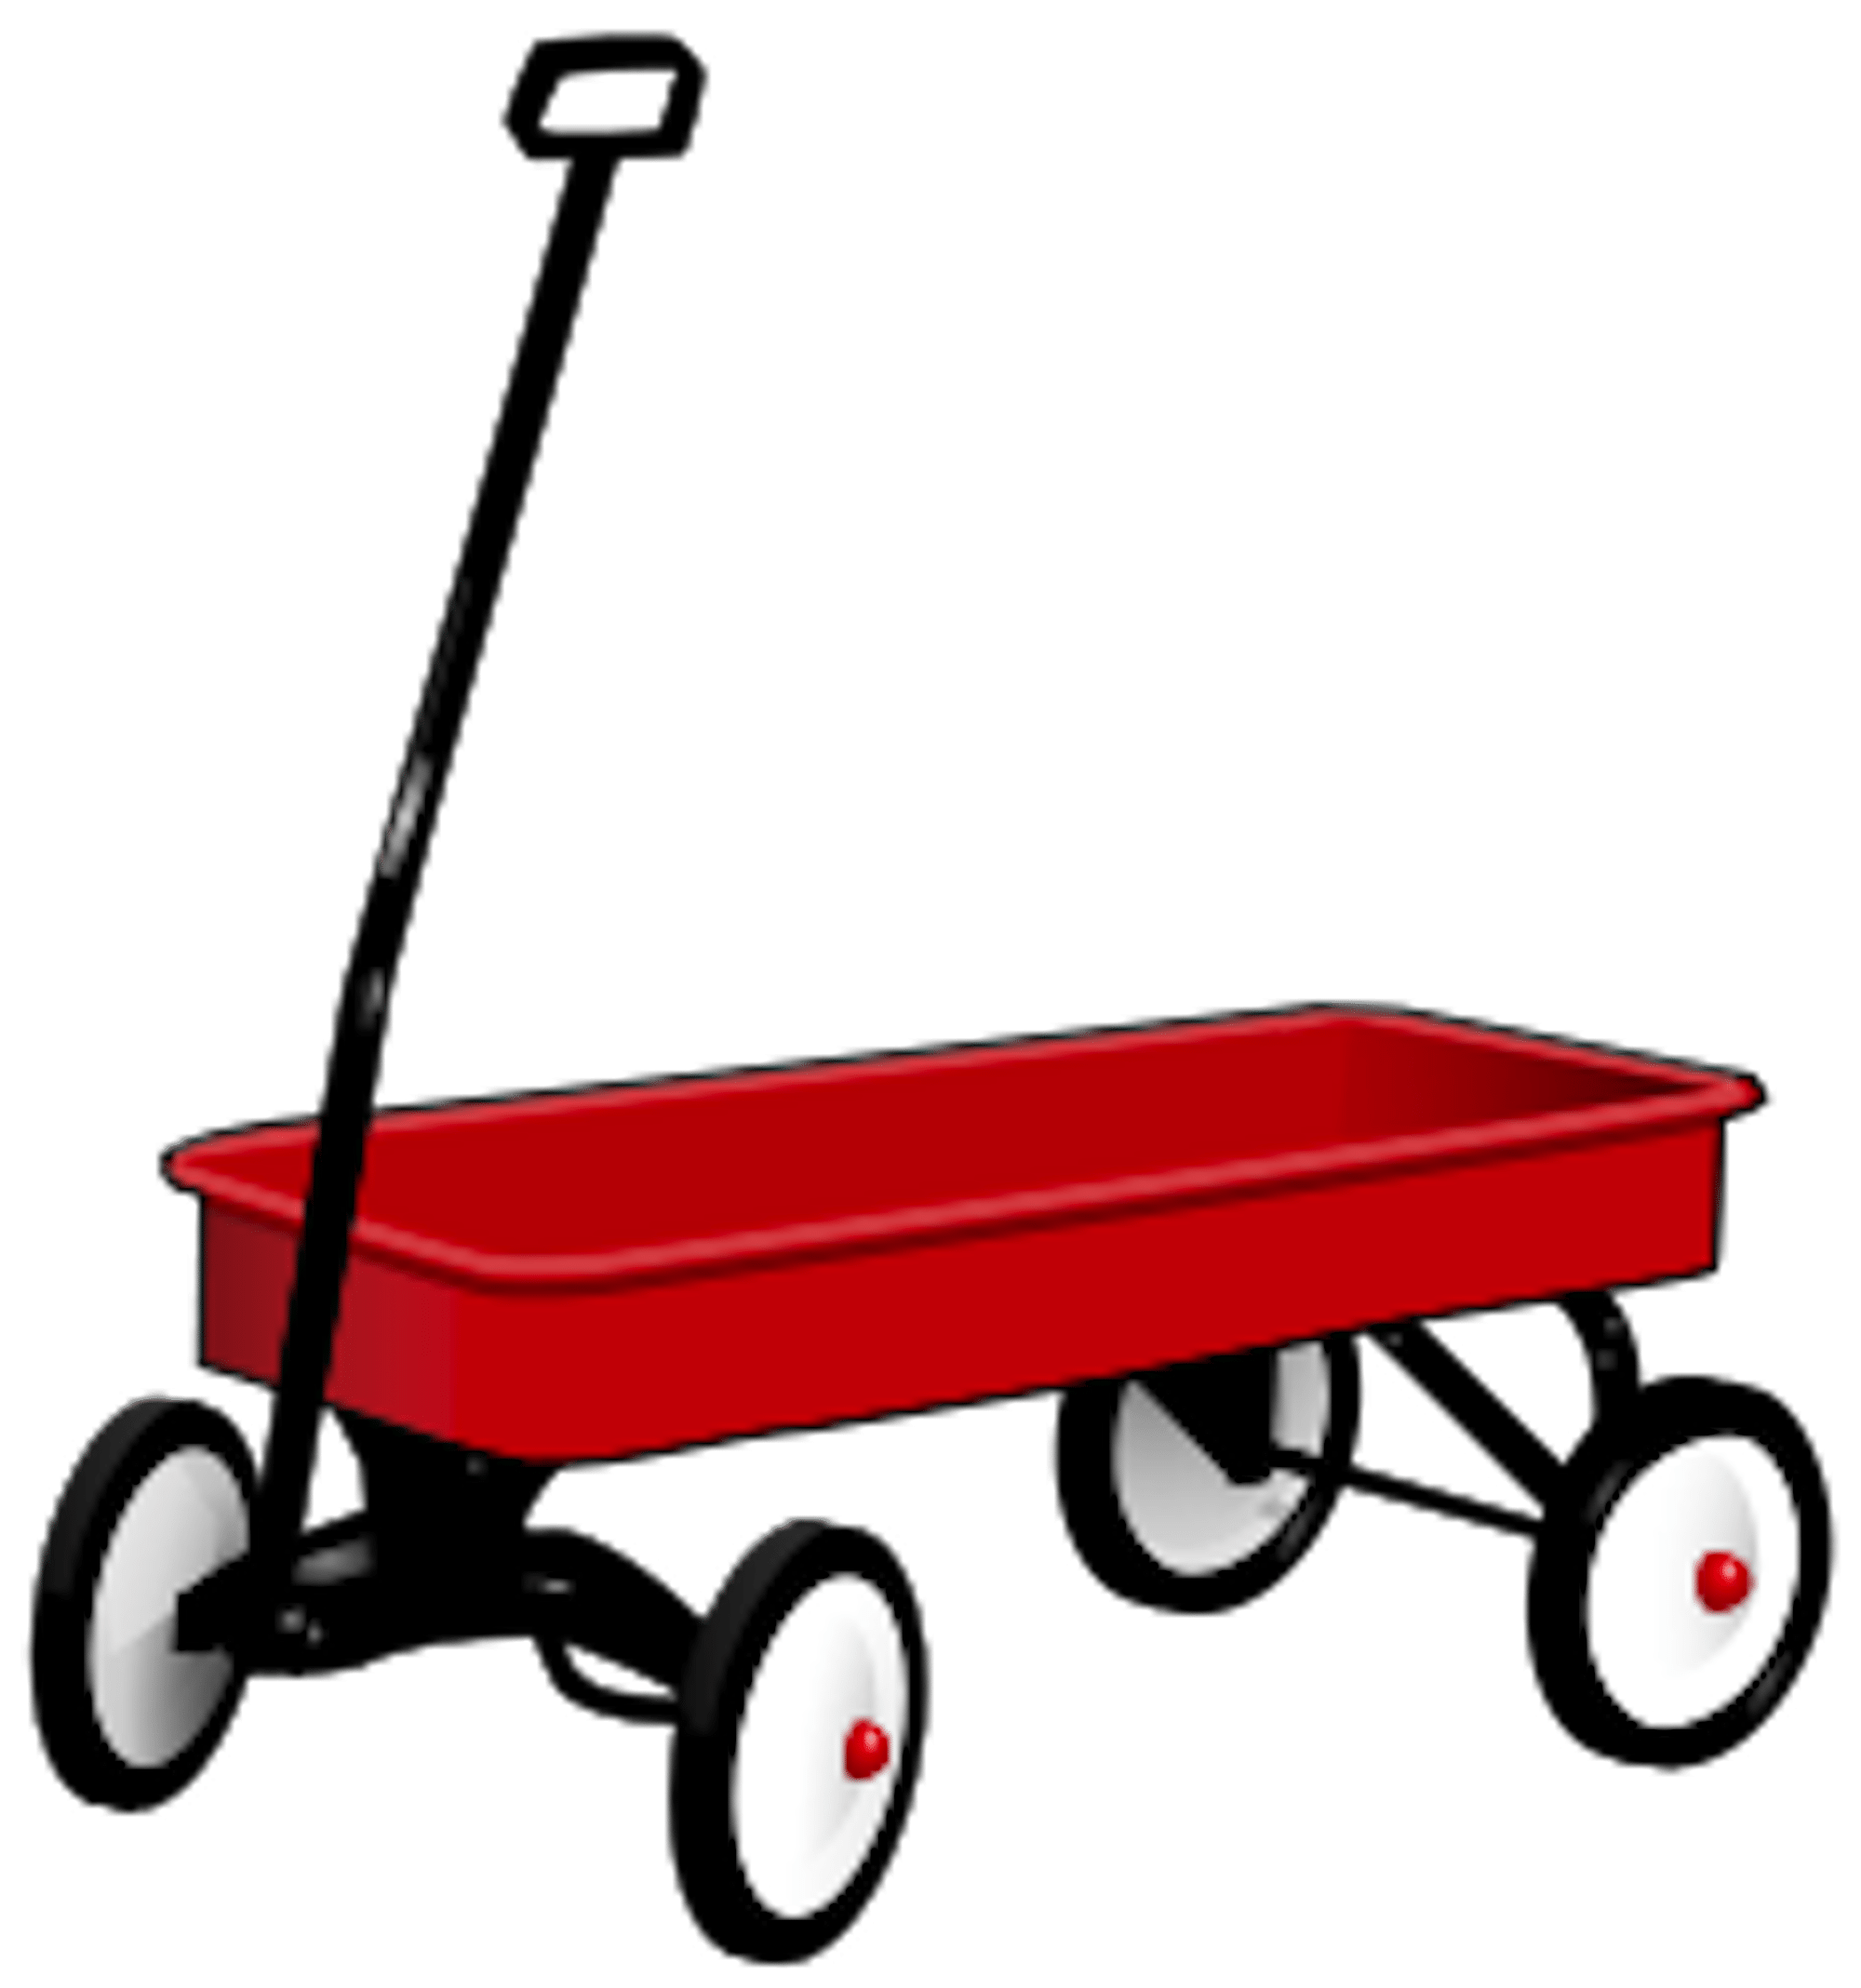 Little Red Wagon Day - A day that celebrates that red wagon toy that we could use to haul things in. #LittleRedWagonDay